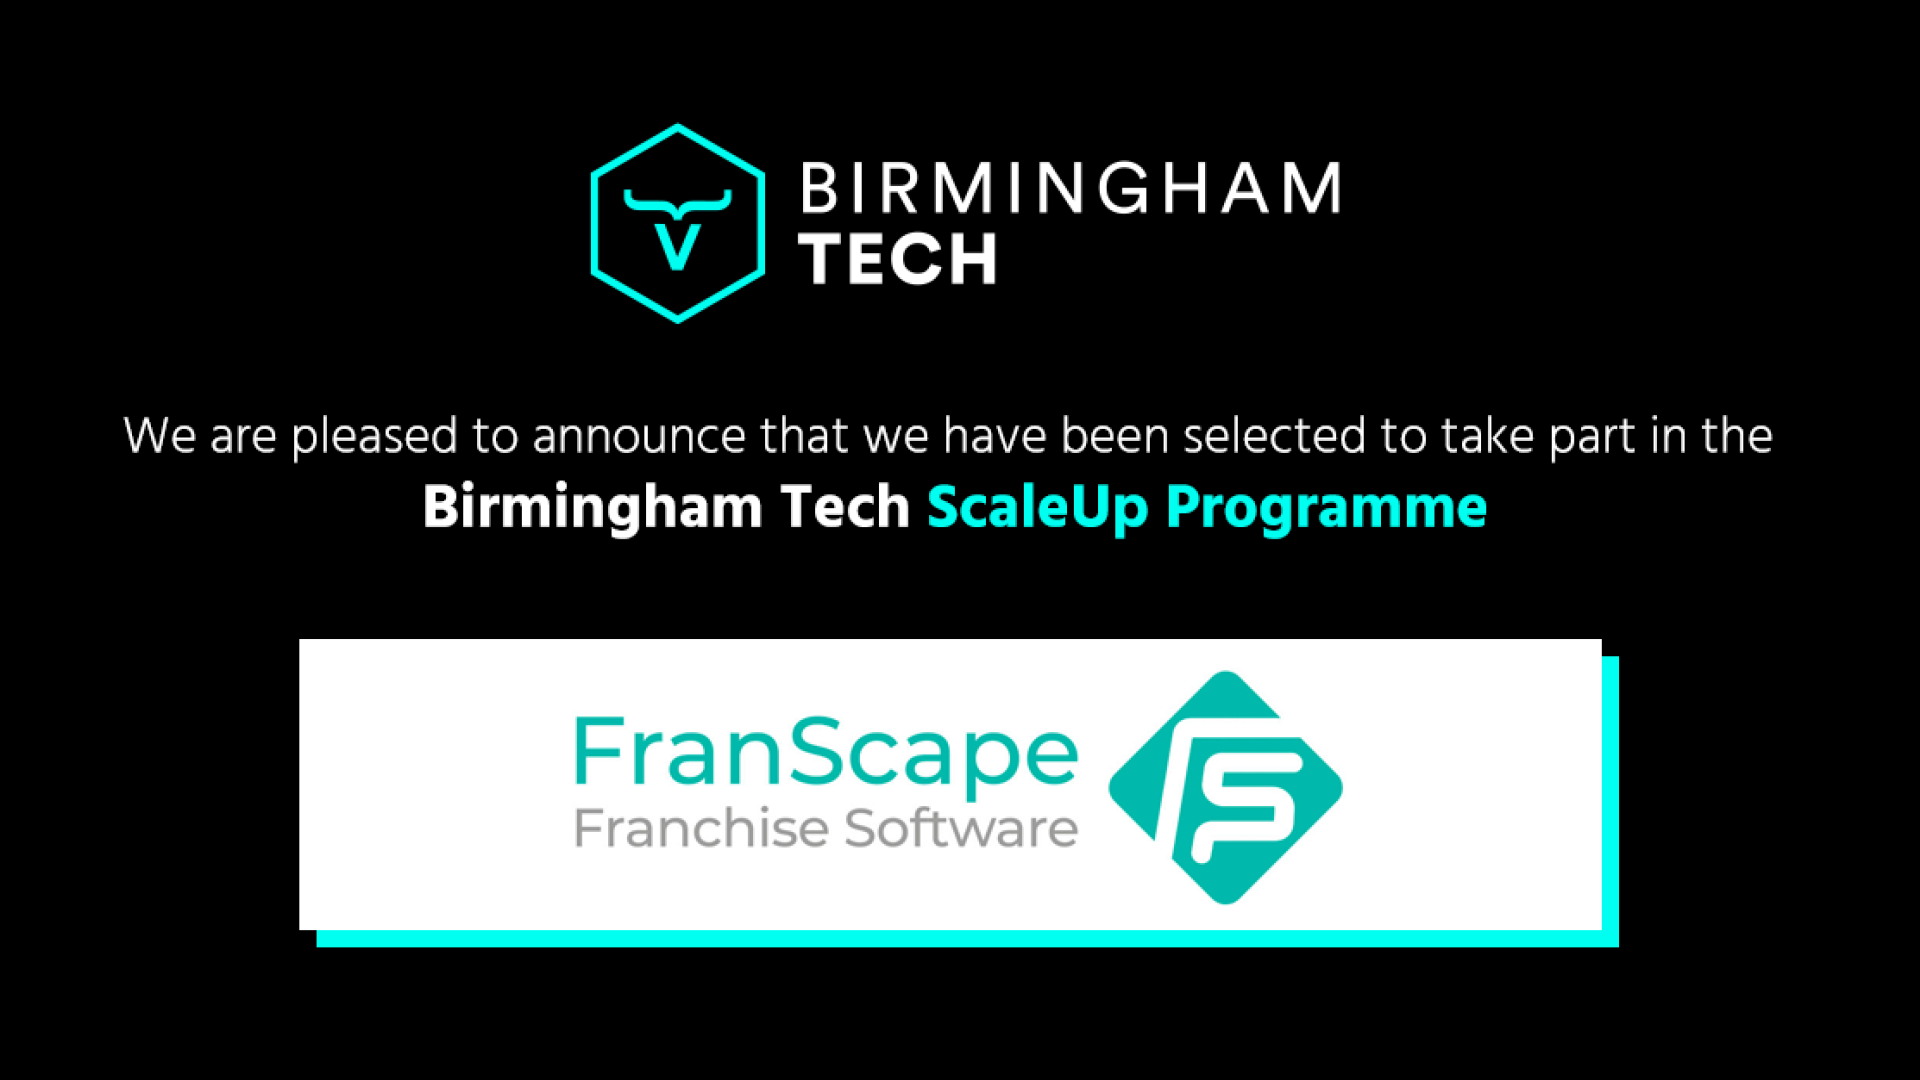 Birmingham Tech announces the first cohort on their ScaleUp Programme with 12 innovative and exciting businesses selected